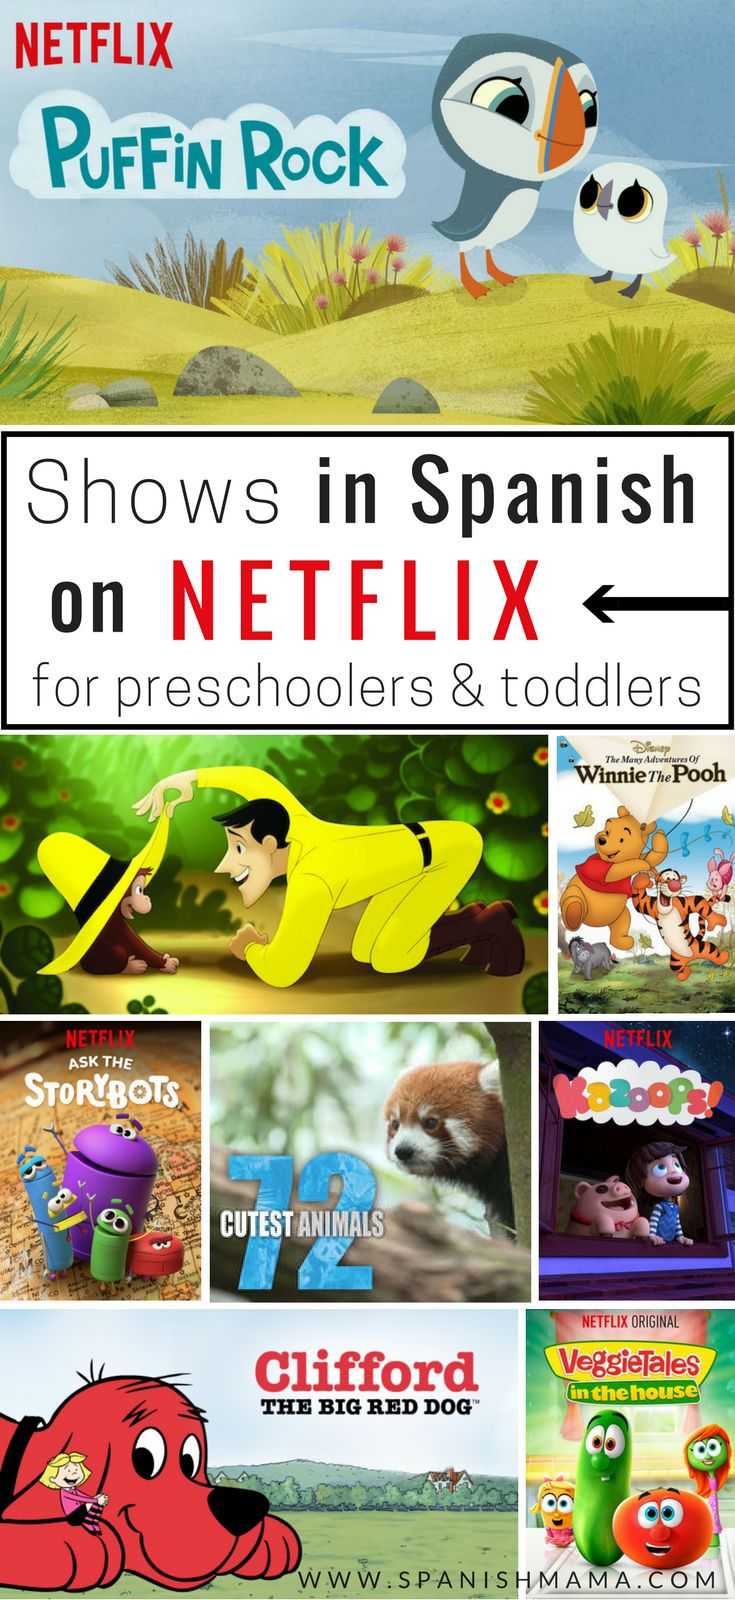 Shows in Spanish on Netflix, for Kids. A list of bilingual series, cartoons, and programs all available on Netflix. #netflixshowsinspanish #spanishnetflixforkids #spanishcartoons